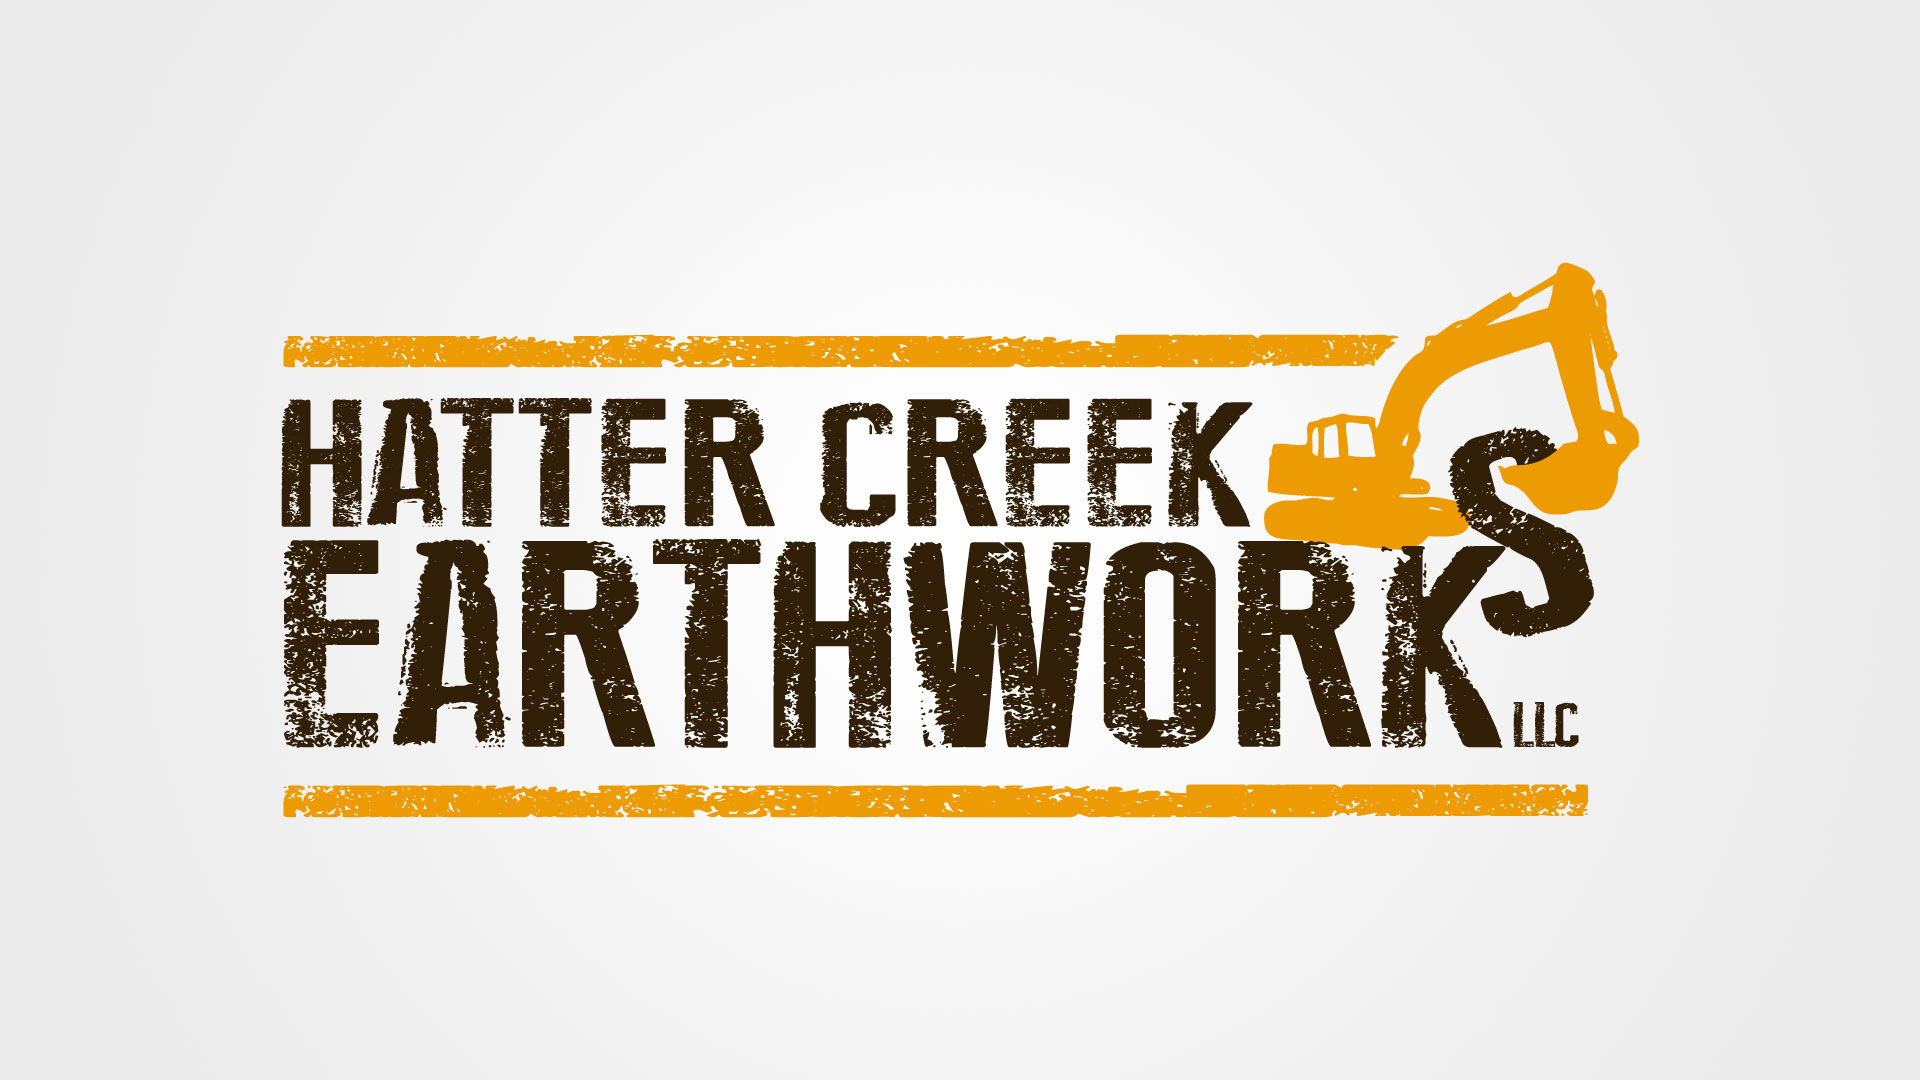 Hatter Creek Earthworks